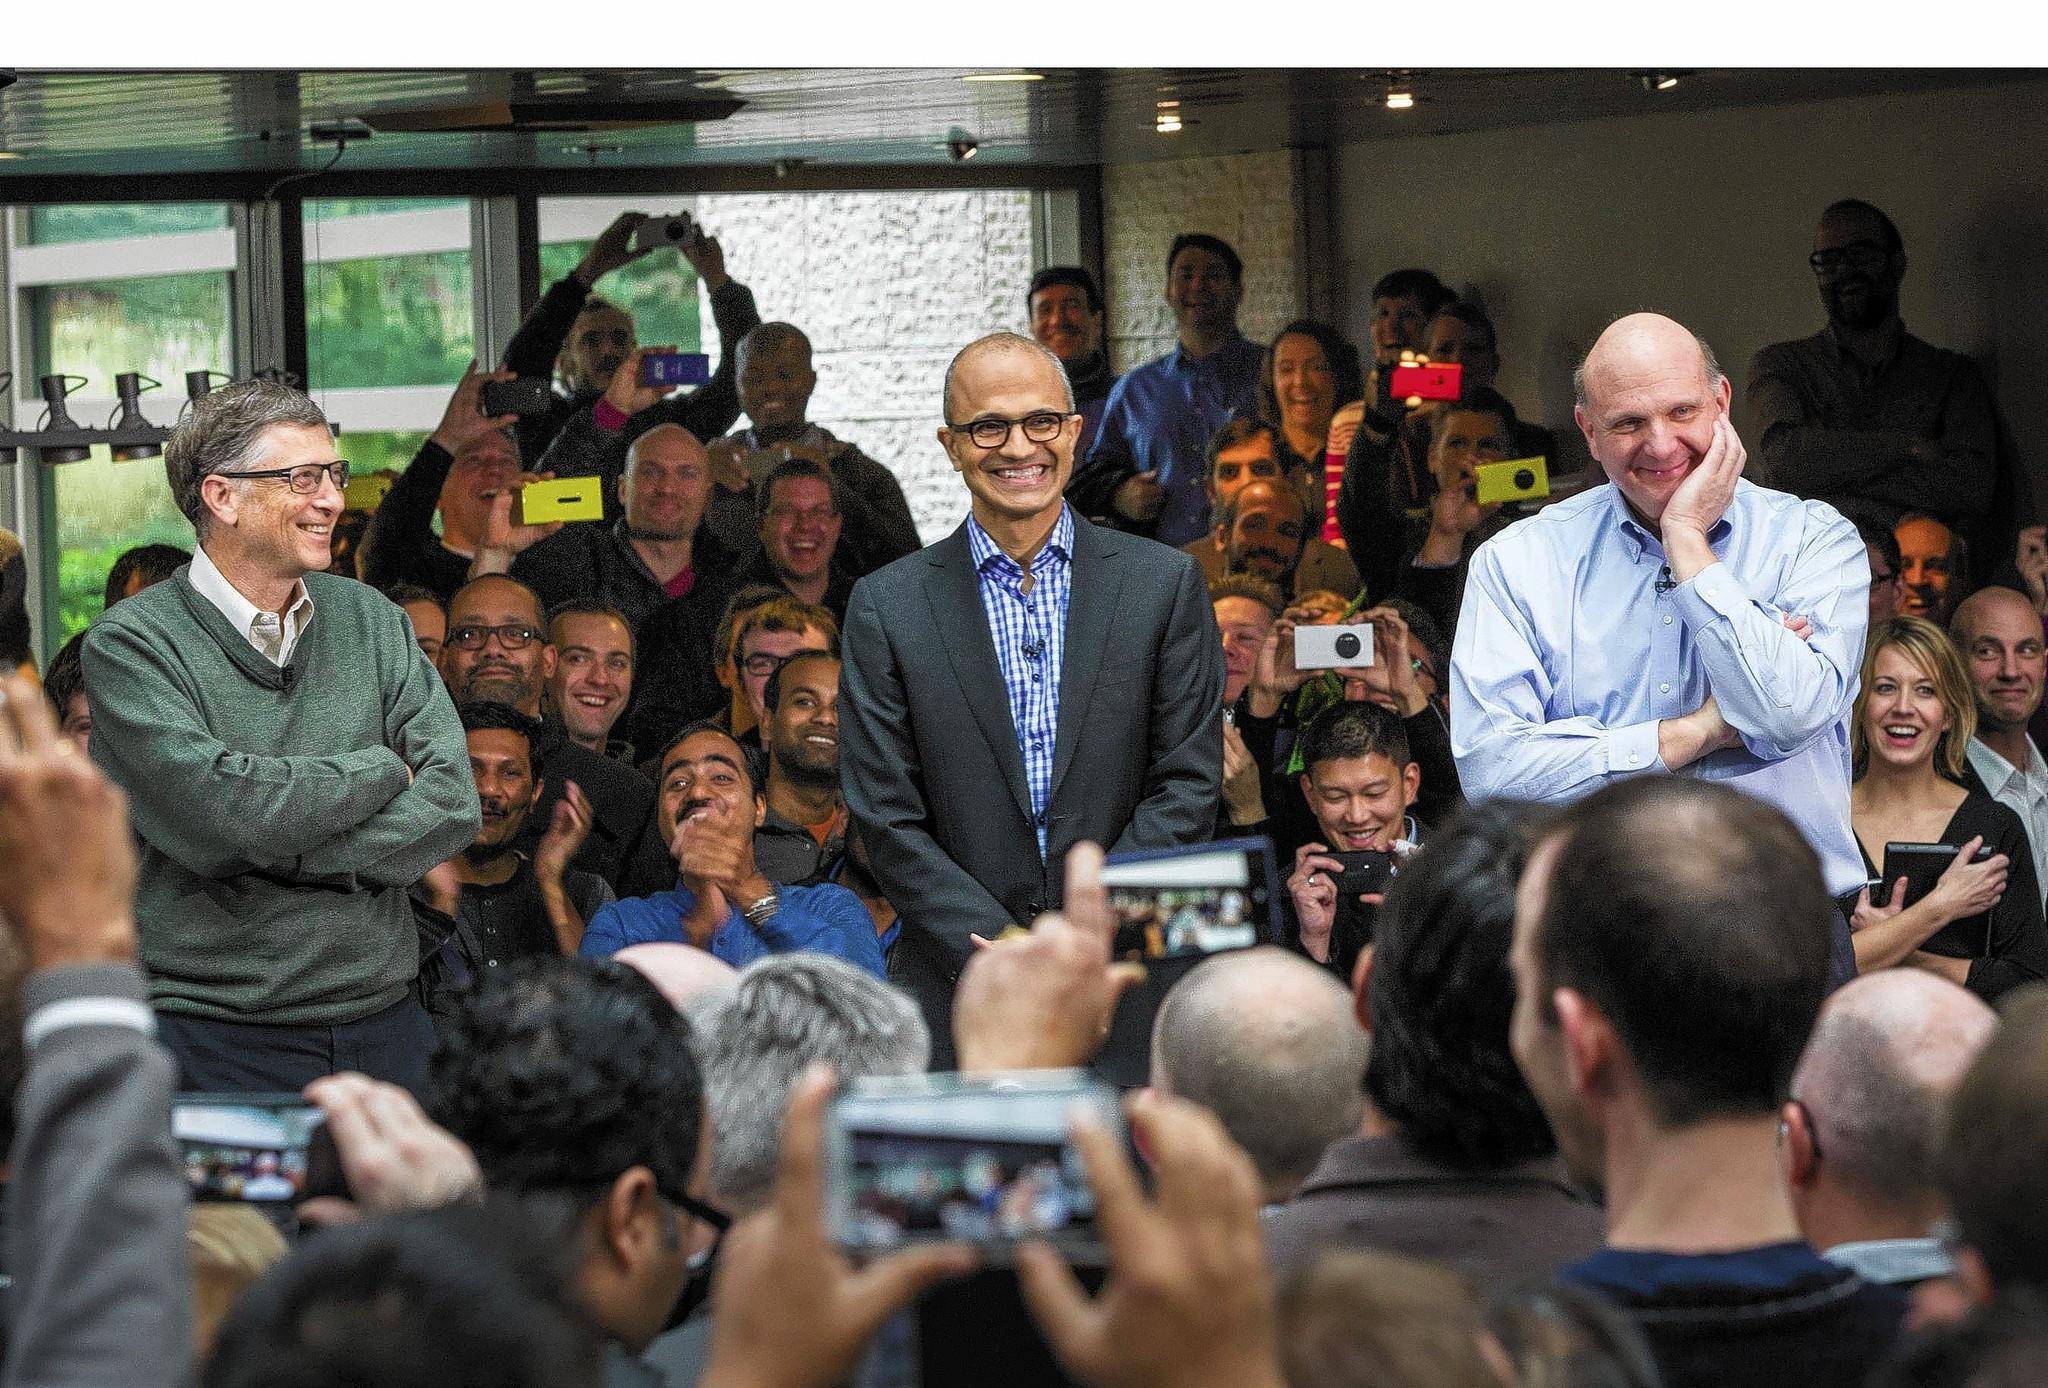 Satya Nadella, Microsoft's new CEO, addresses employees along with Bill Gates and Steve Ballmer at the company's Redmond, Wash., campus.